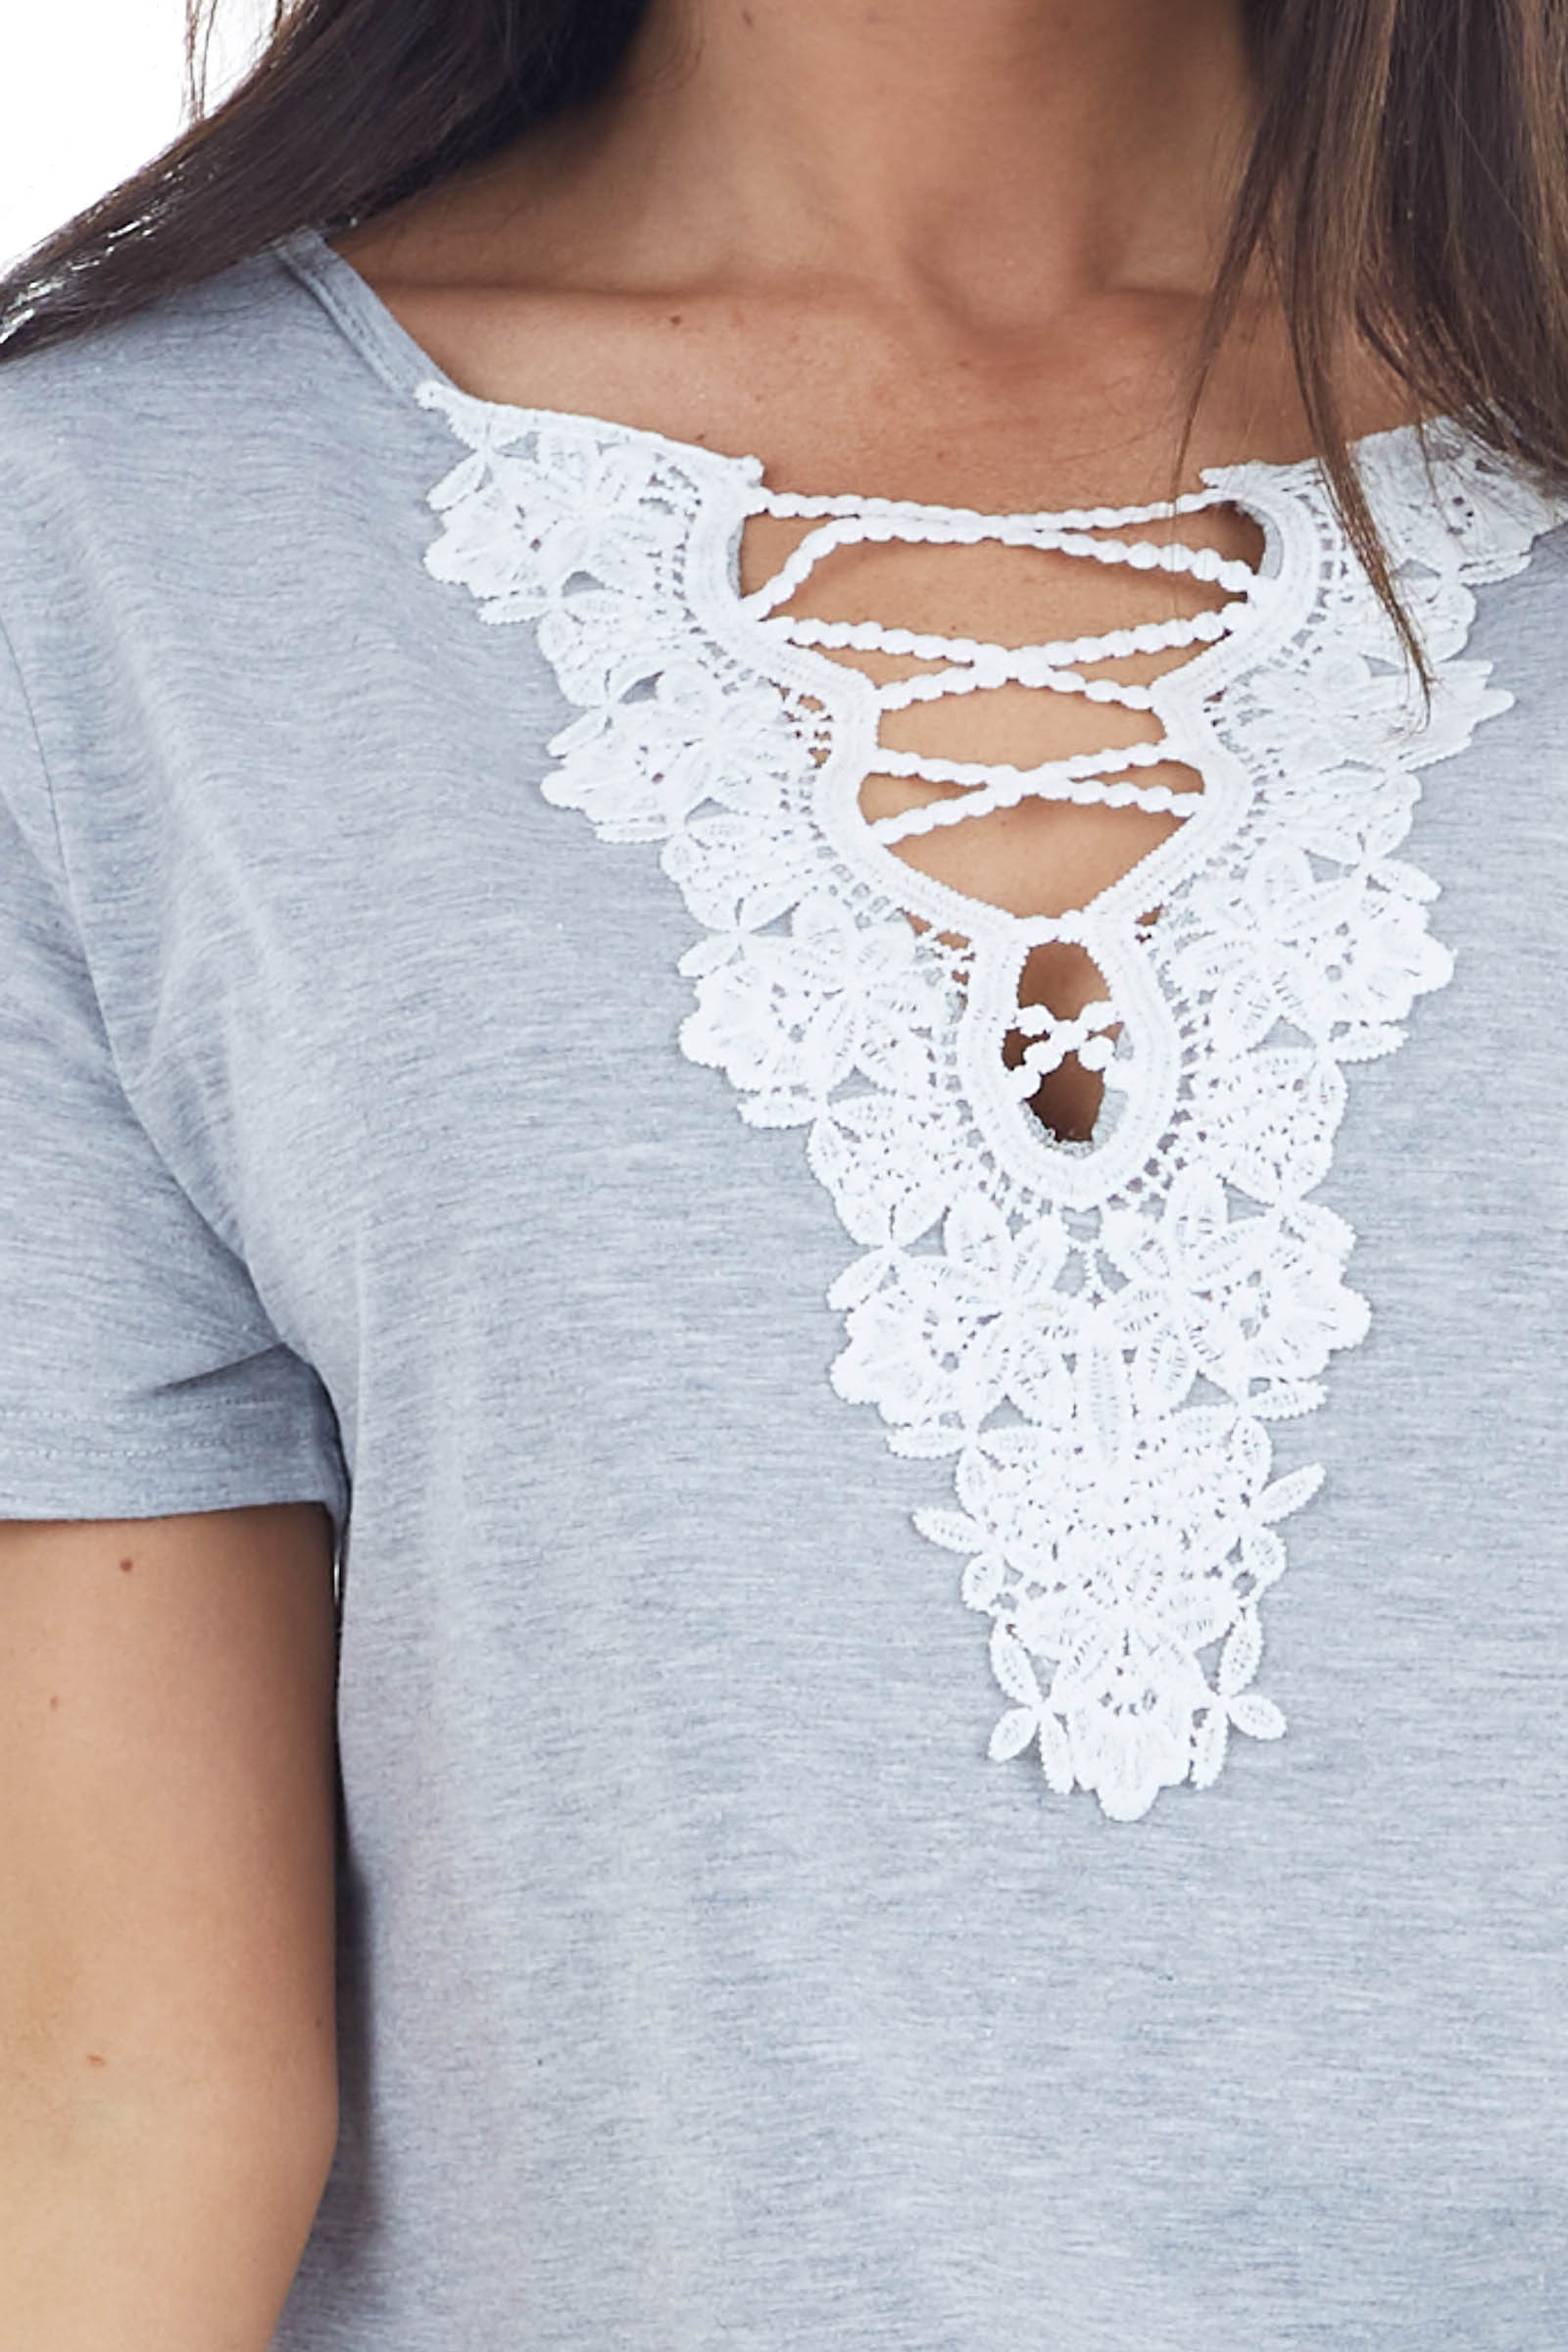 Heather Grey Short Sleeve Knit Top with Lace V Neck Detail